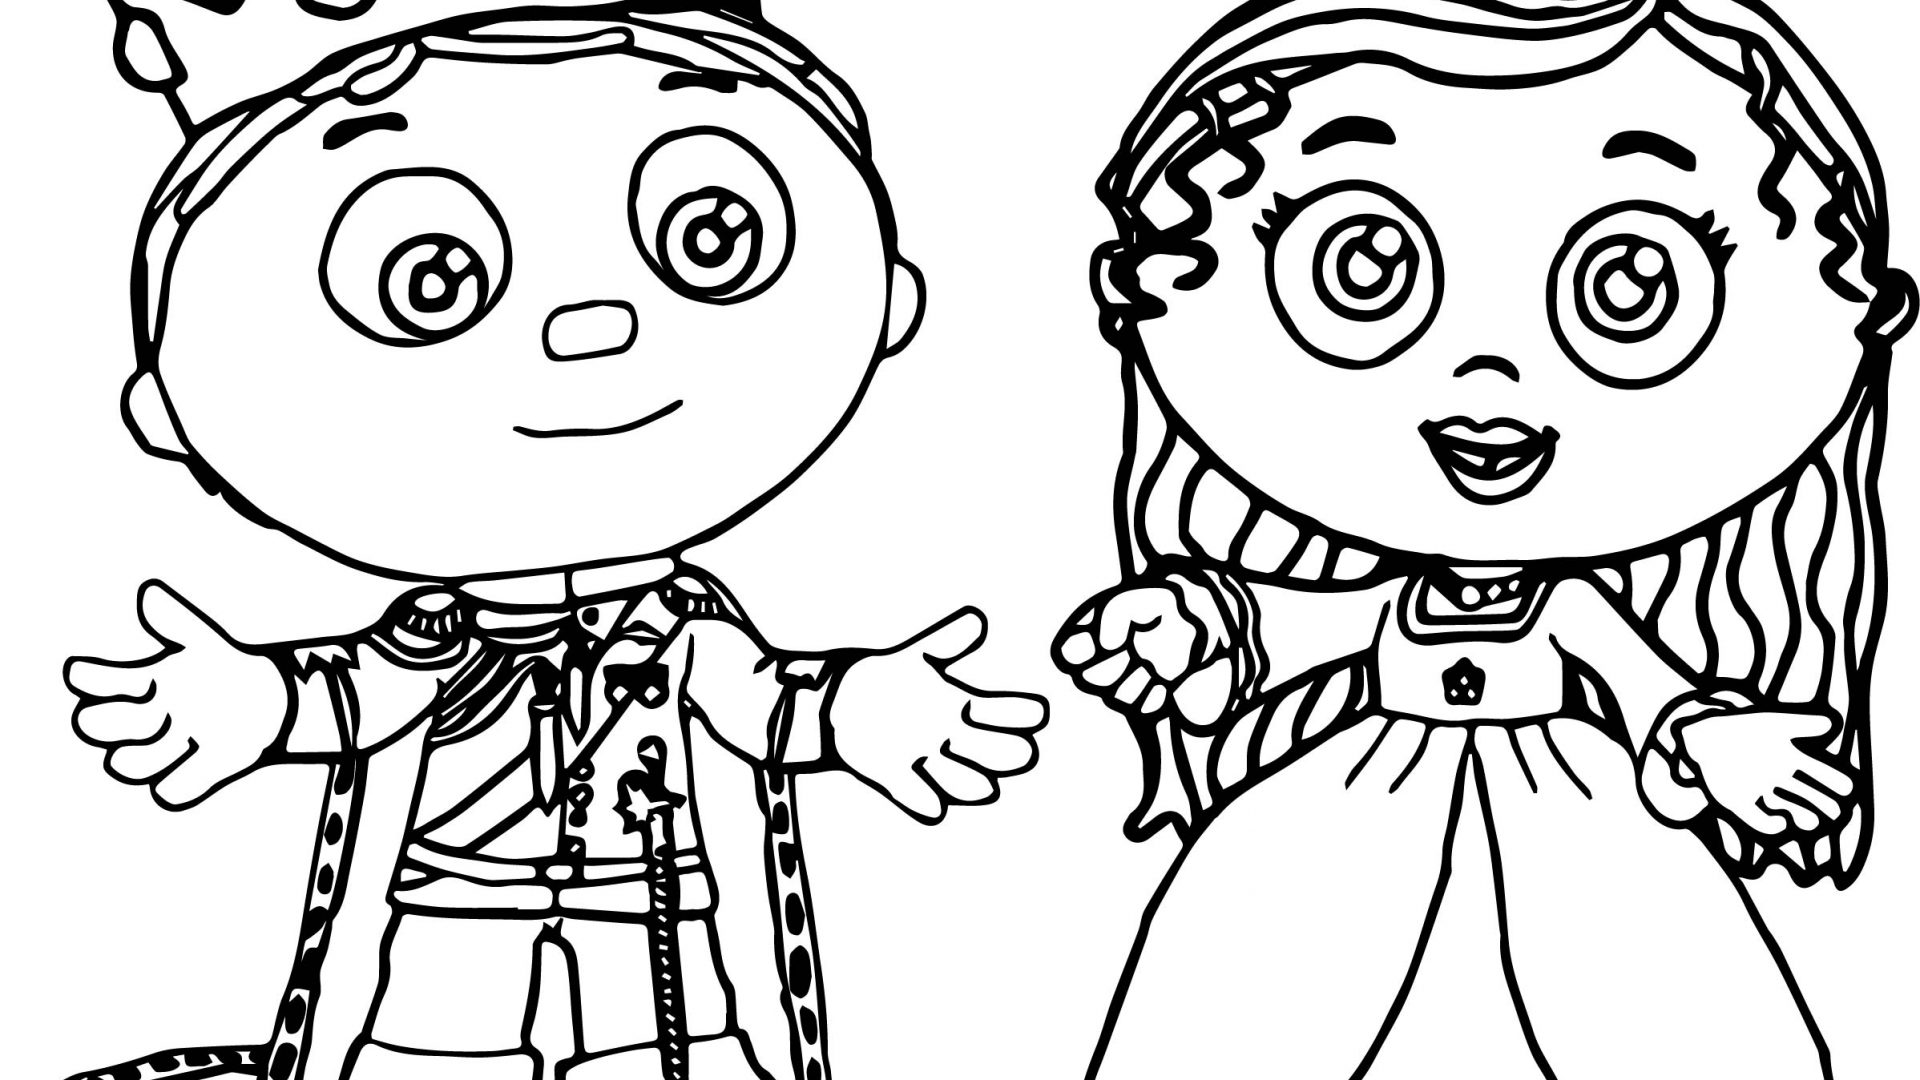 Super Why Coloring Pages Printable at GetDrawings | Free download